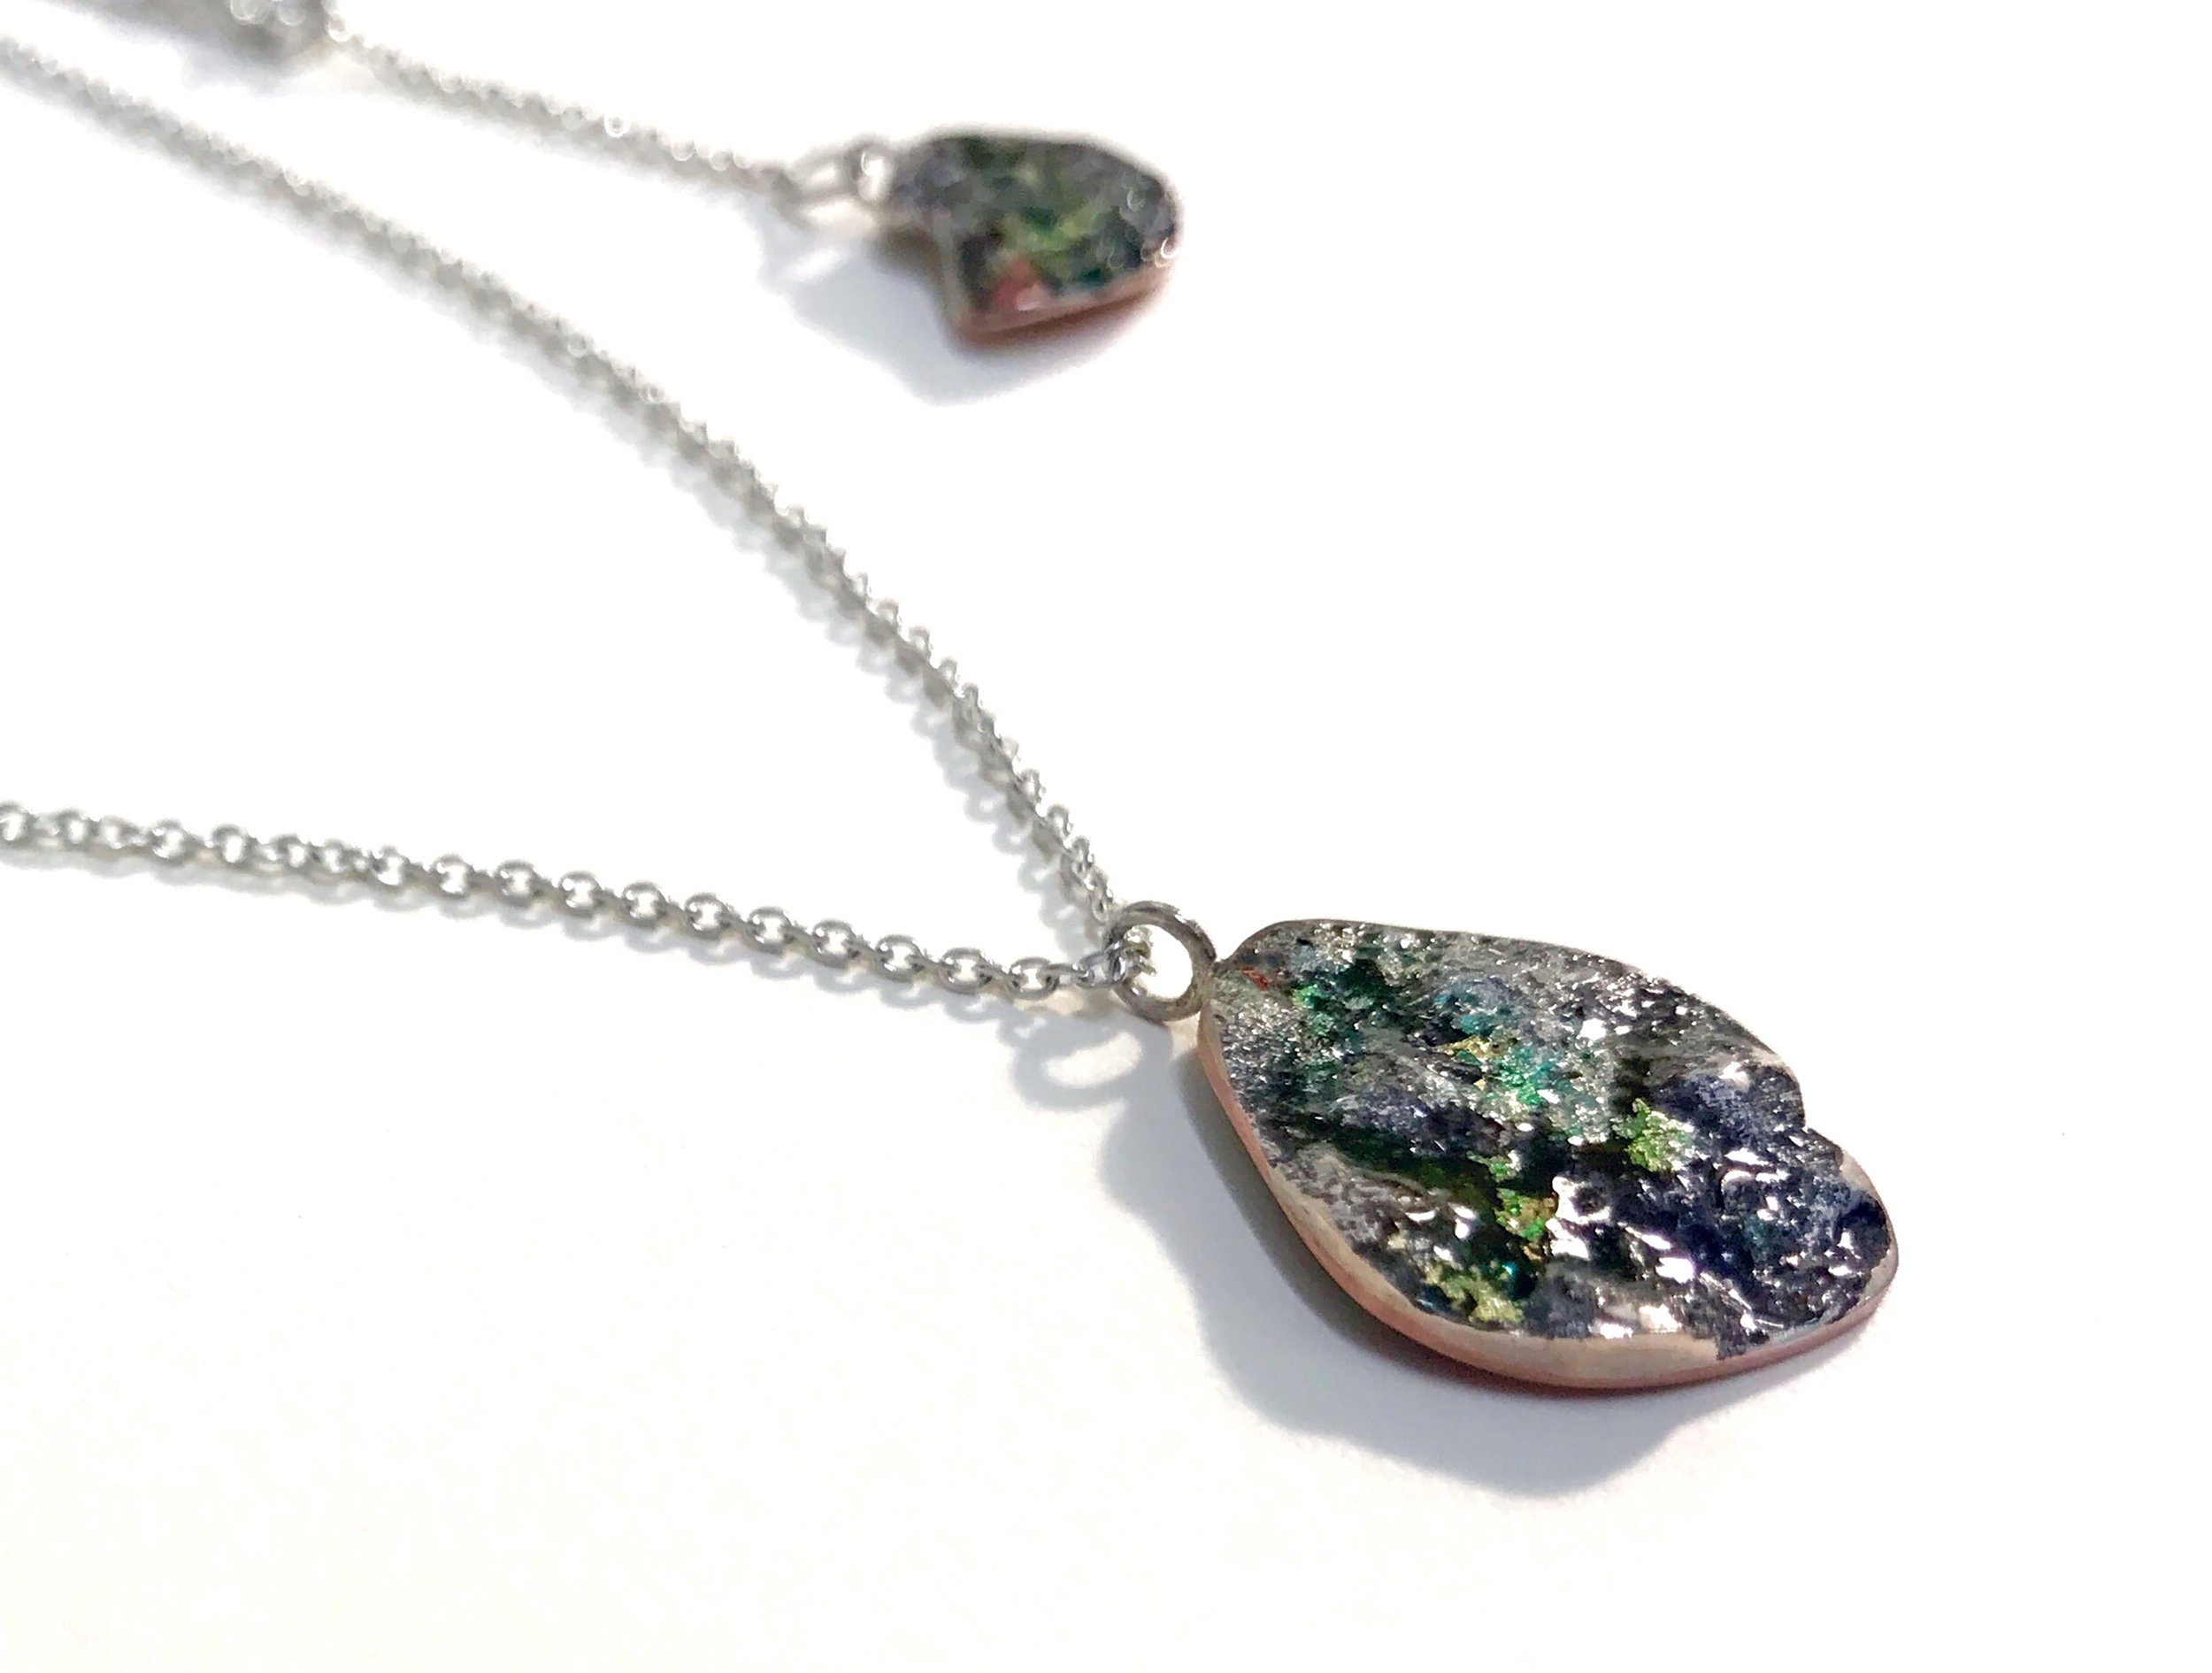 Necklace (2019): Silver, Copper, Gold Leaf, Enamel